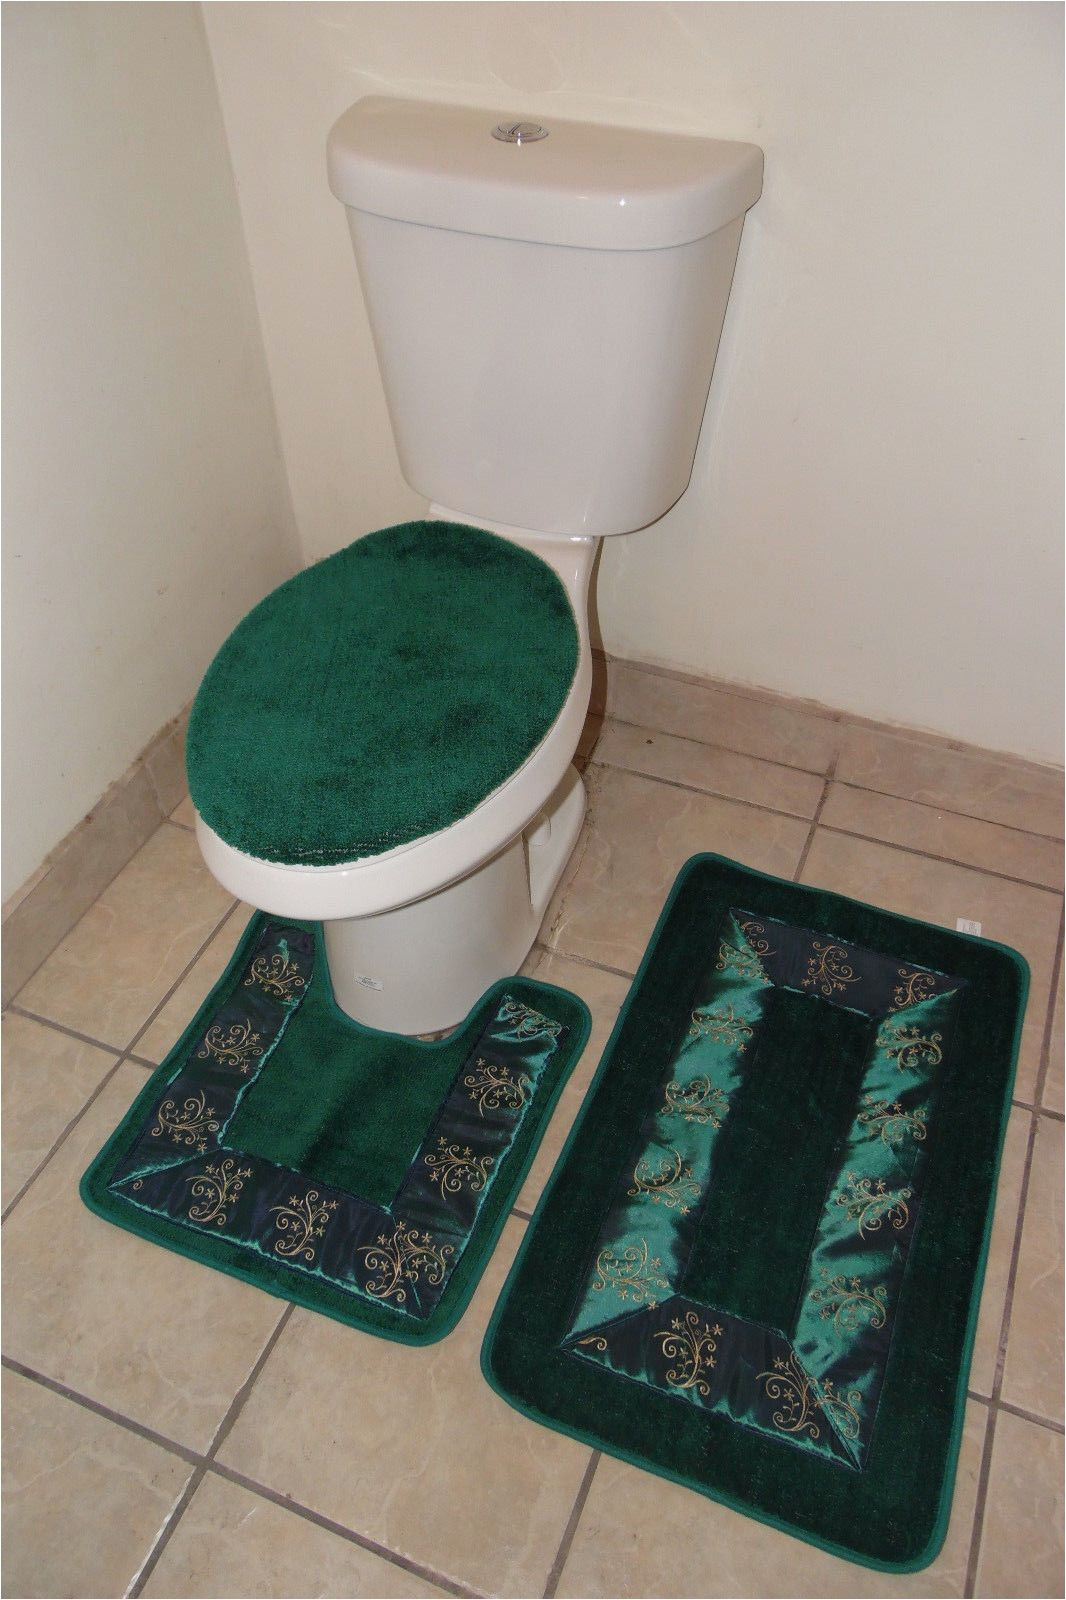 Bathroom Mats and Rugs Sets Bathmats Rugs and toilet Covers 3pc 5 Hunter Green